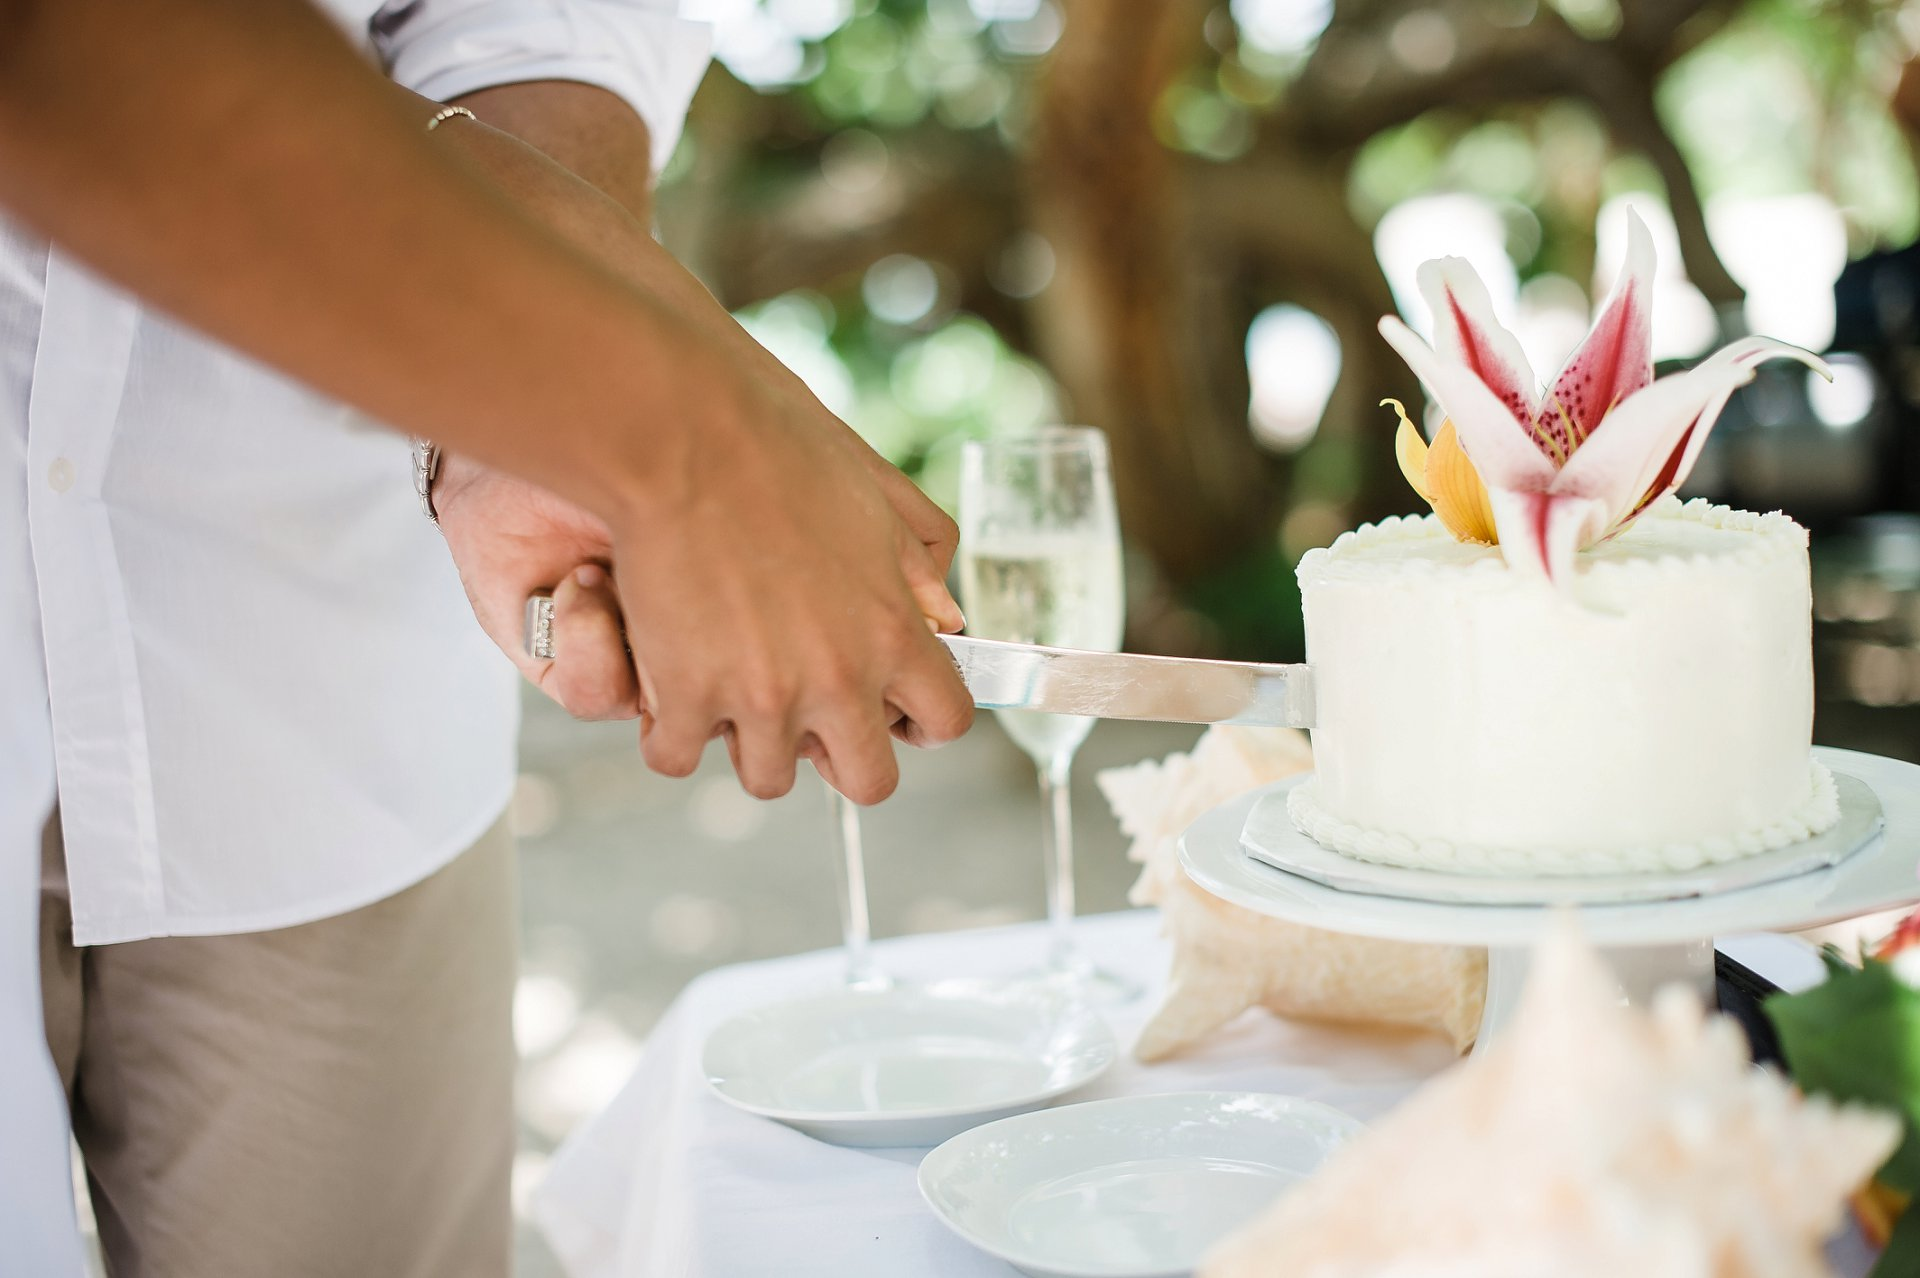 Cutting small wedding cake at elopement wedding.